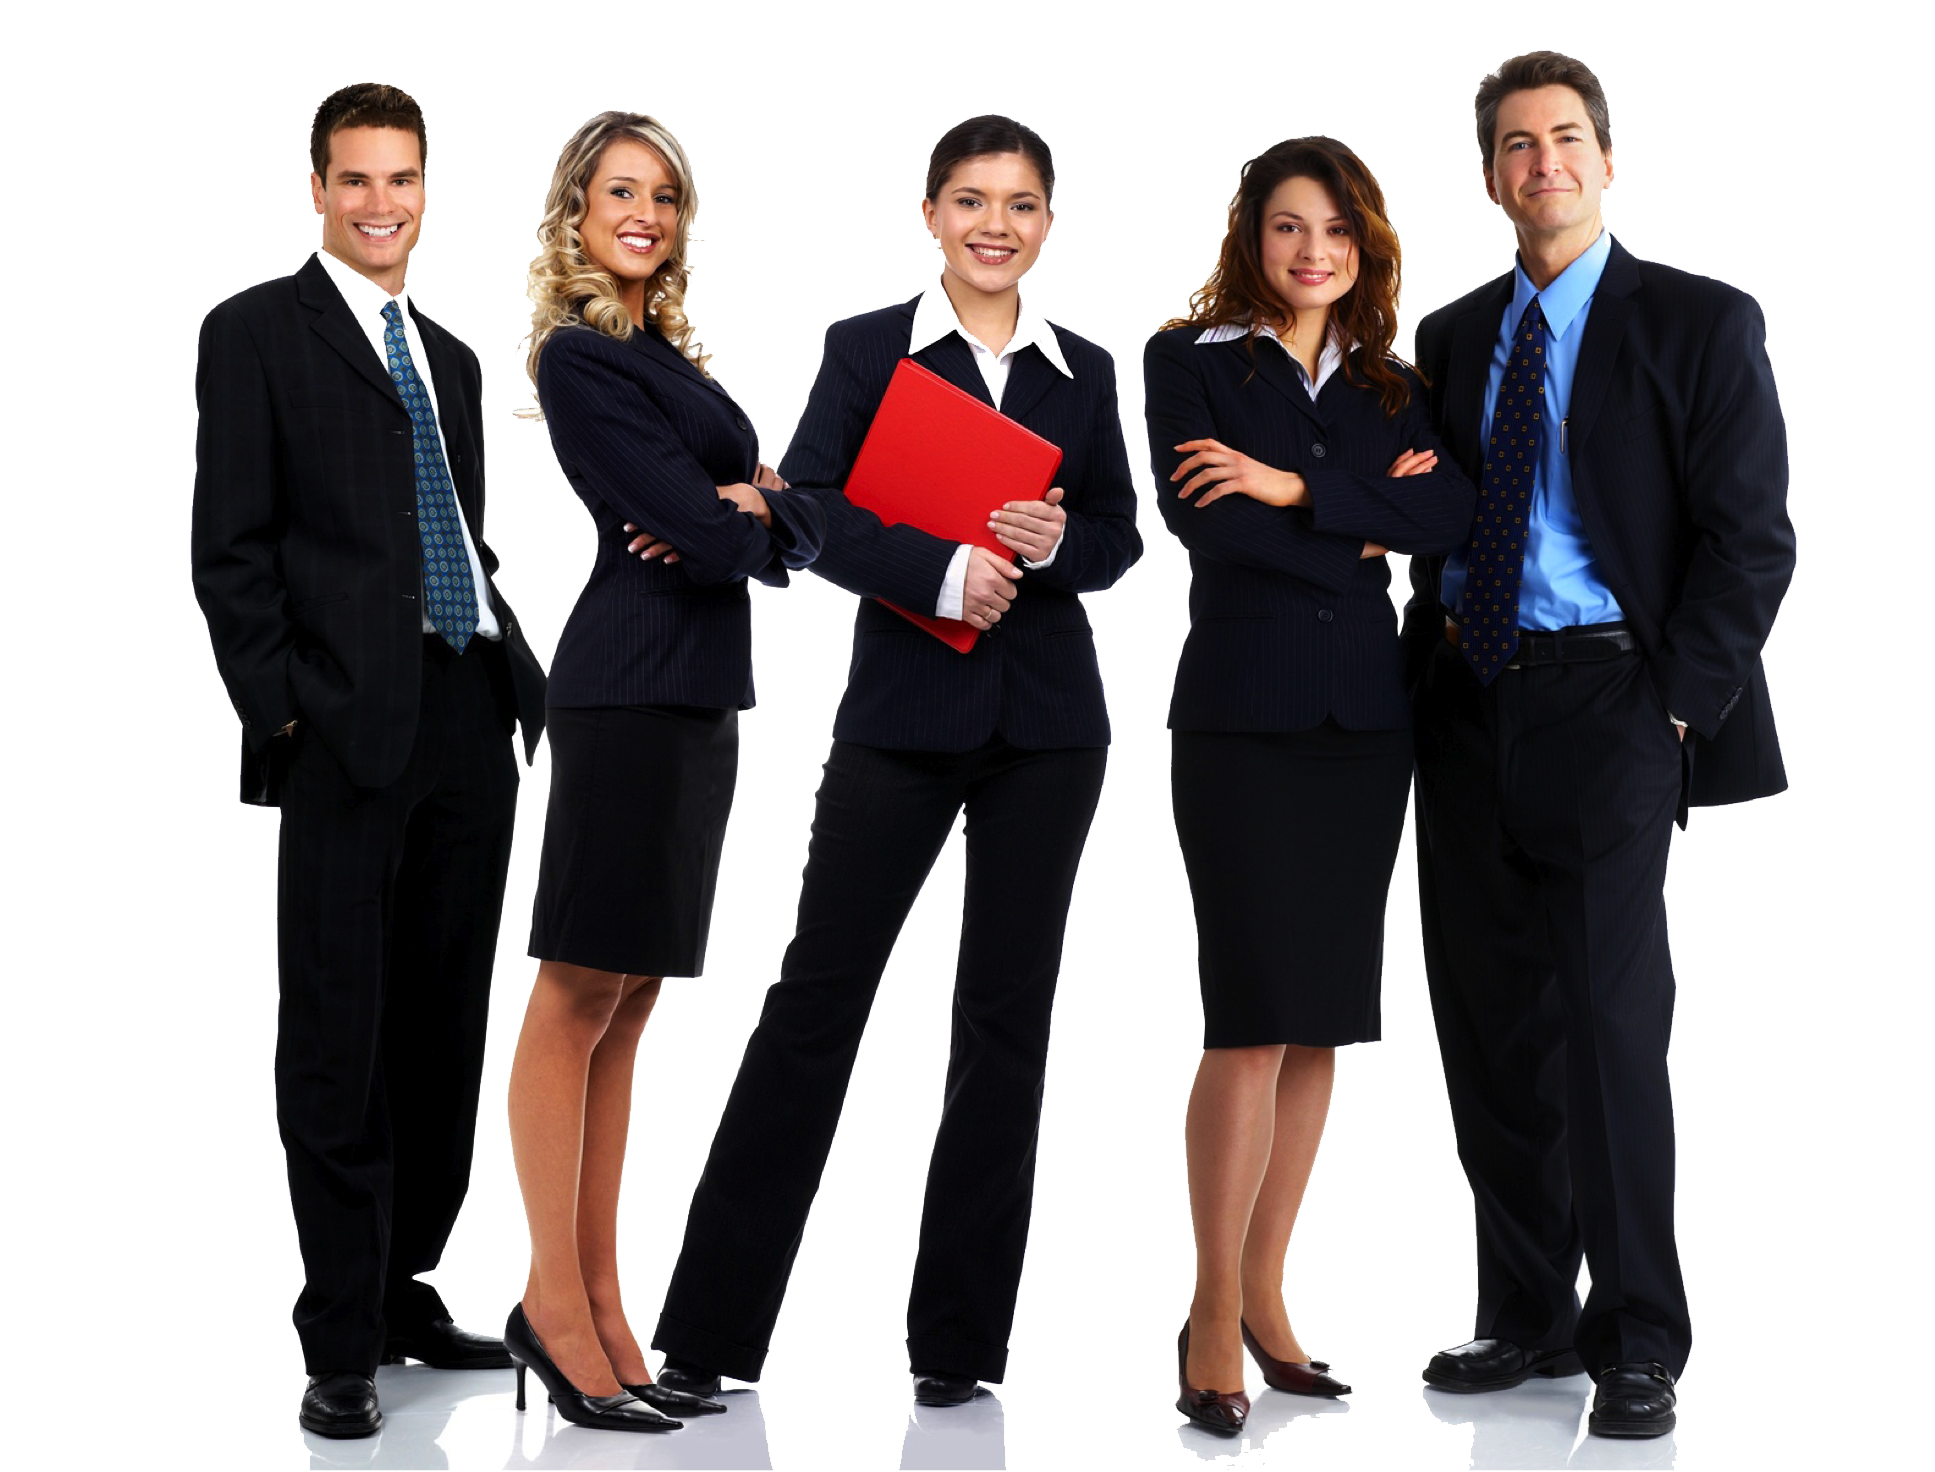 Business People Hd PNG Image